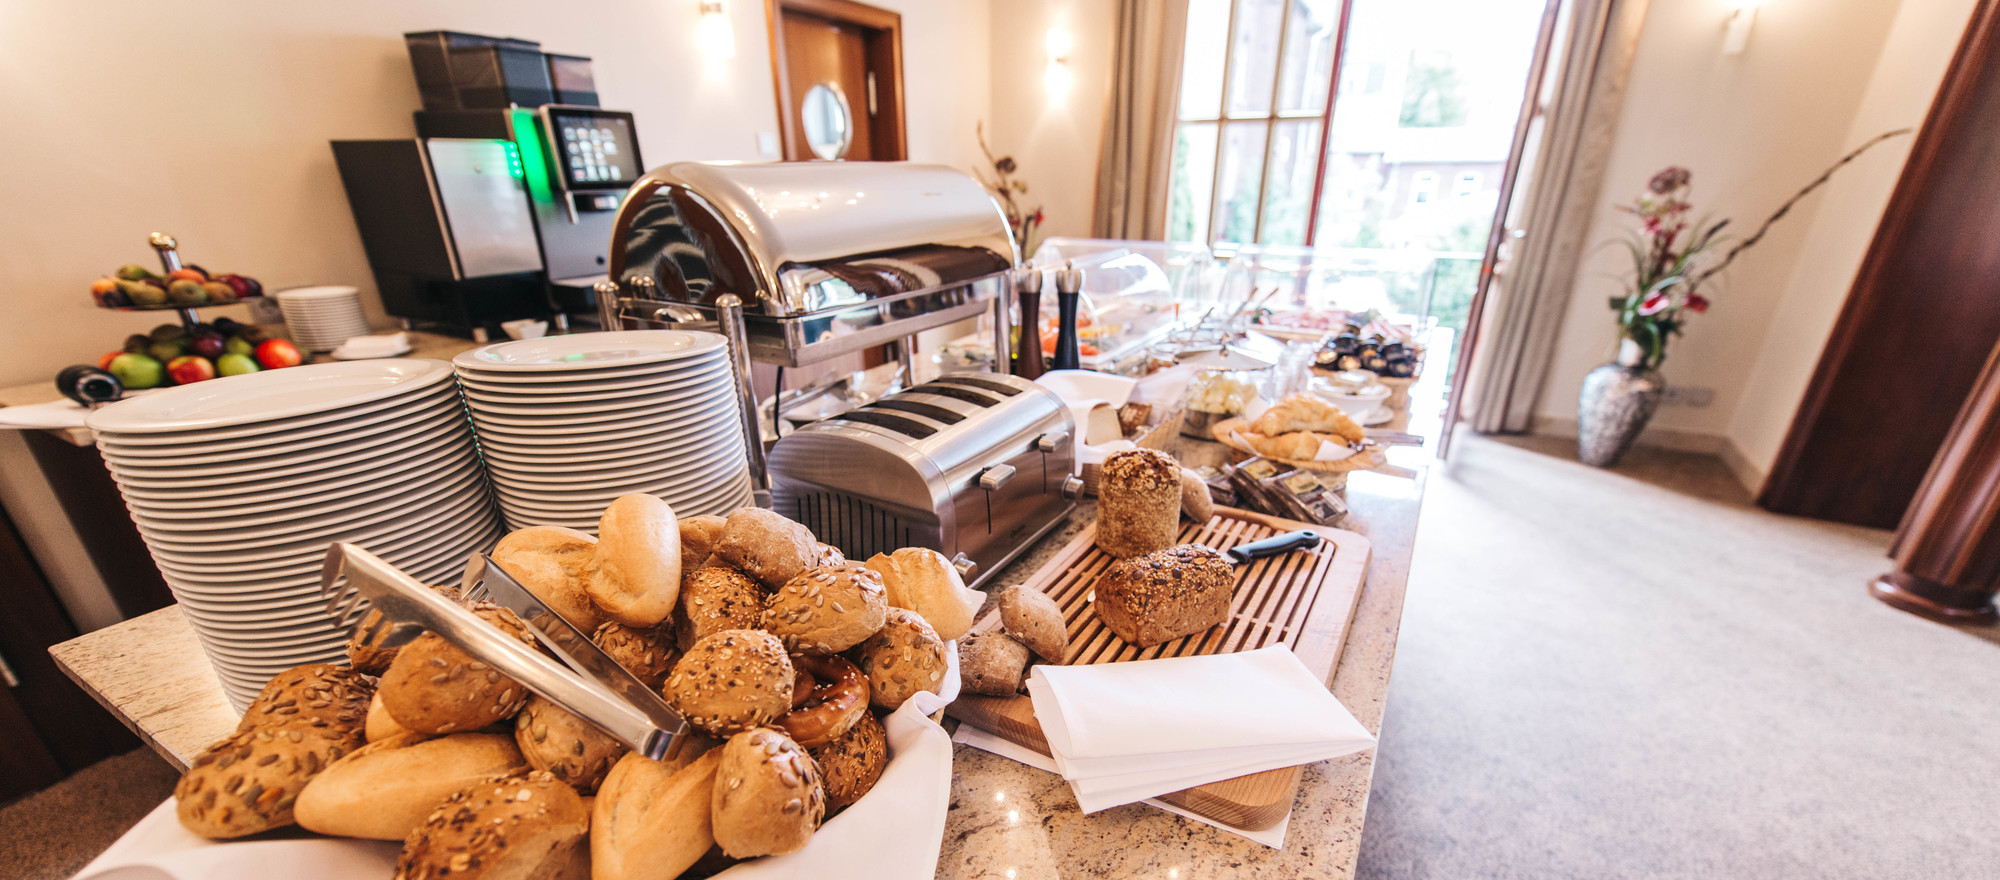 A rich breakfast buffet awaits you at the 4-star hotel Ringhotel Kocks at Muehlenberg garni in Muelheim